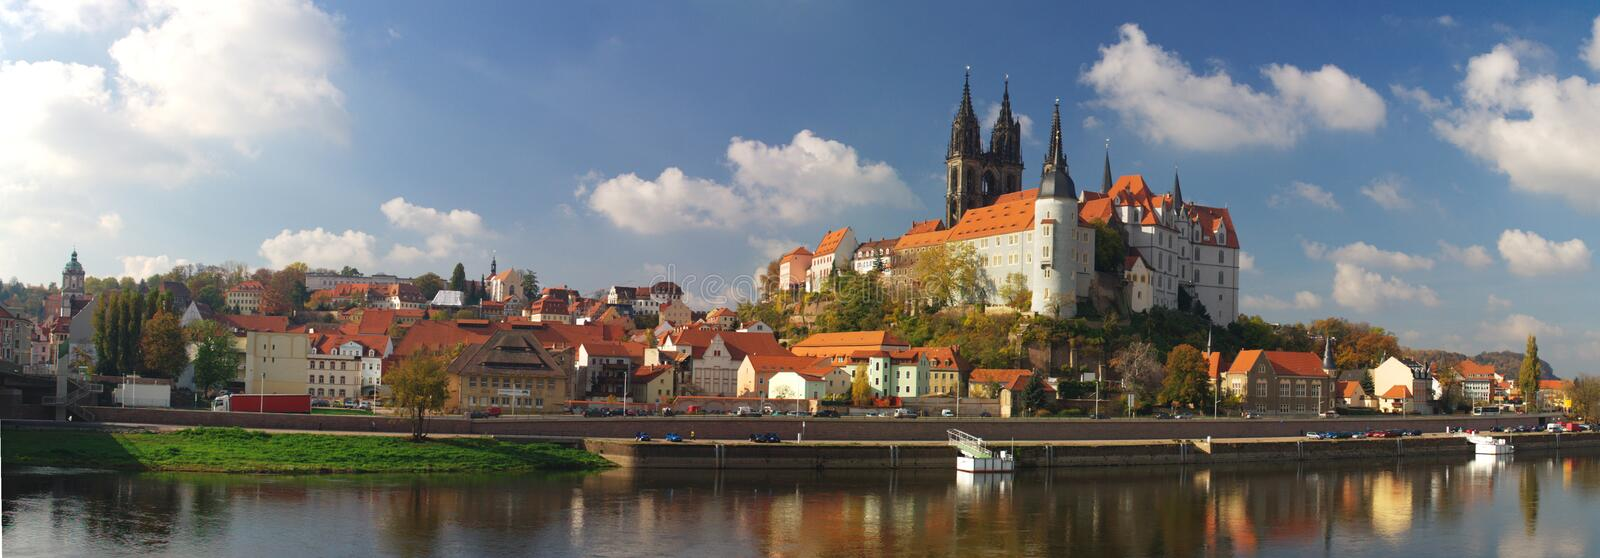 View on Meissen royalty free stock photo